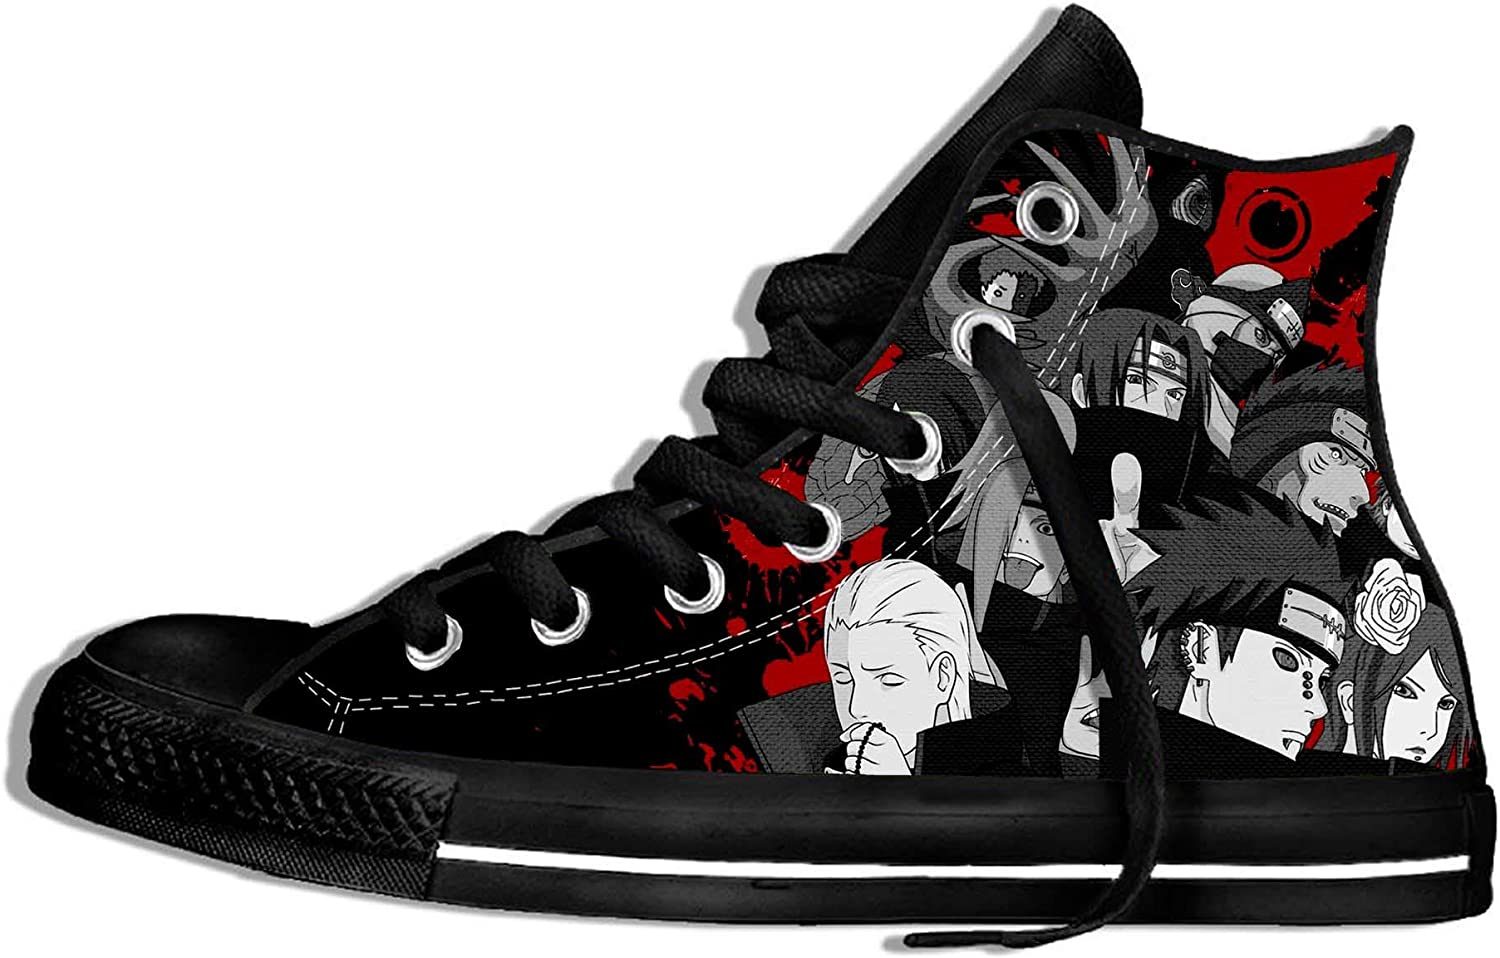 HFRNRS Unisex Adult 3D Japanese Anime Naruto Shoes Lightweight Casual Shoes Cool Sneakers